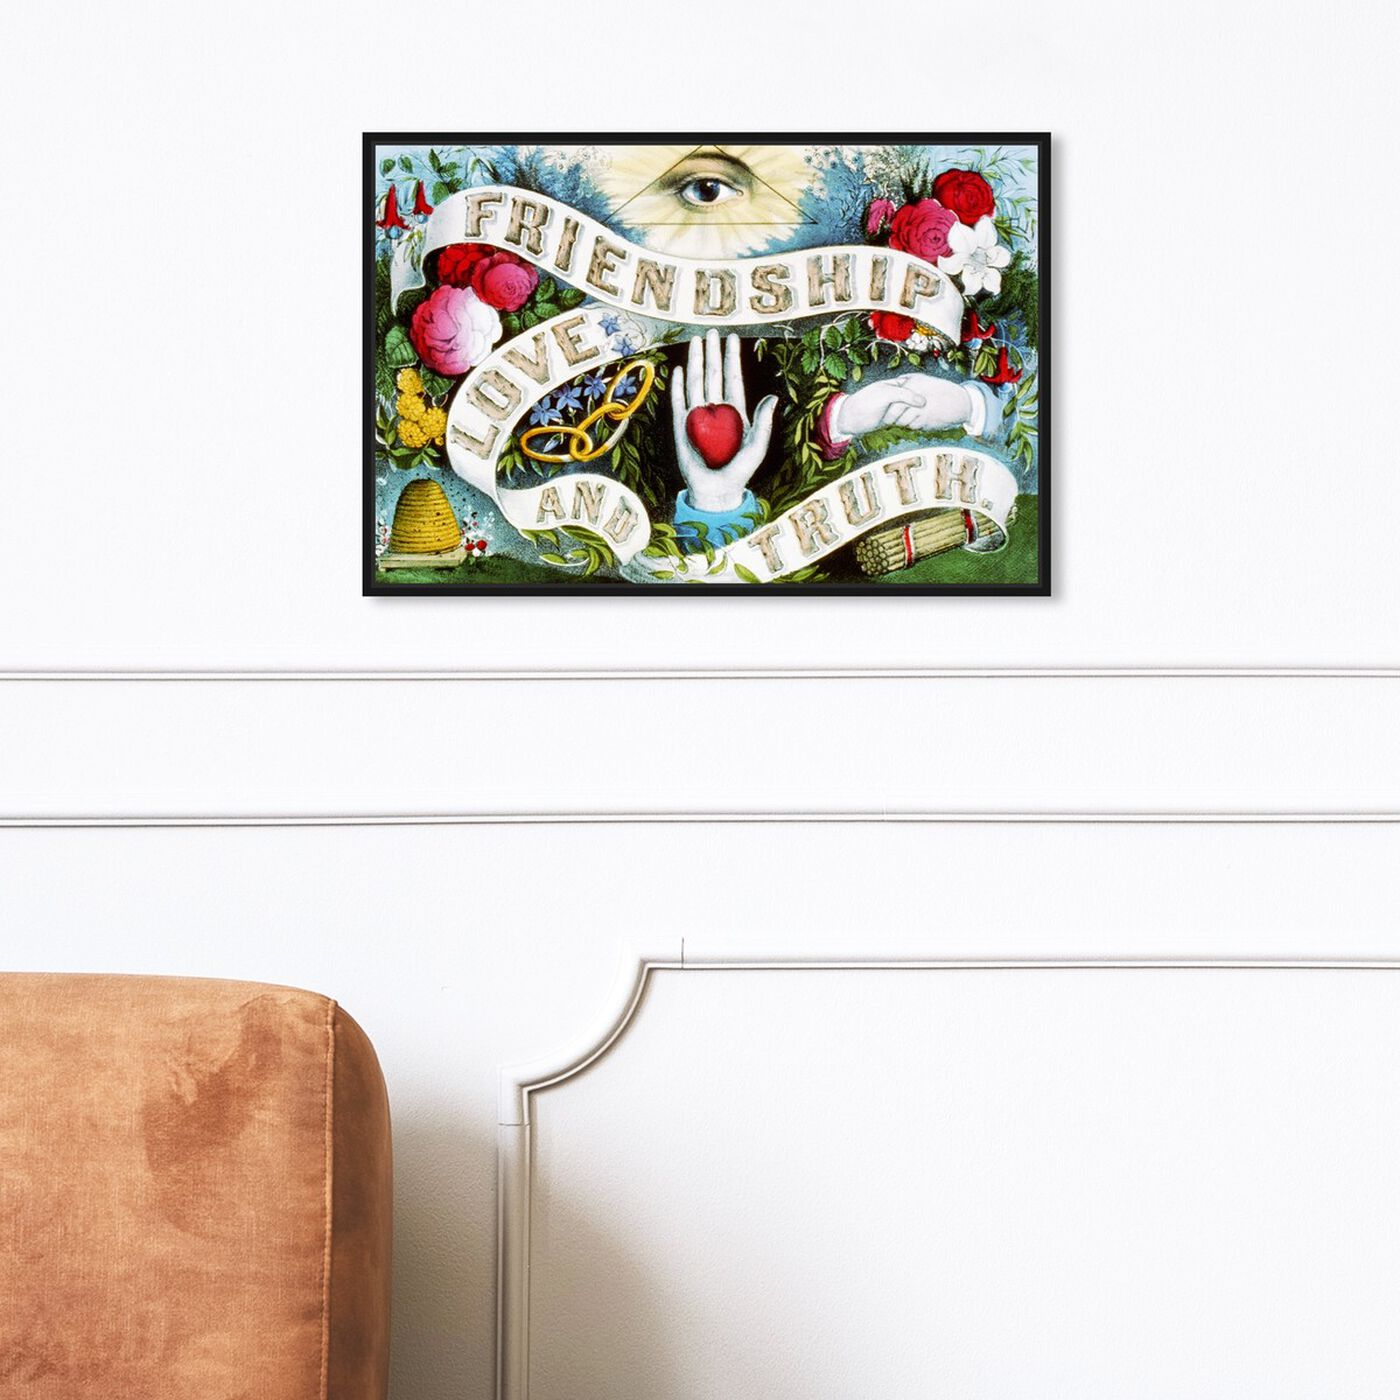 Hanging view of Friendship Love and Truth featuring symbols and objects and mystic symbols art.